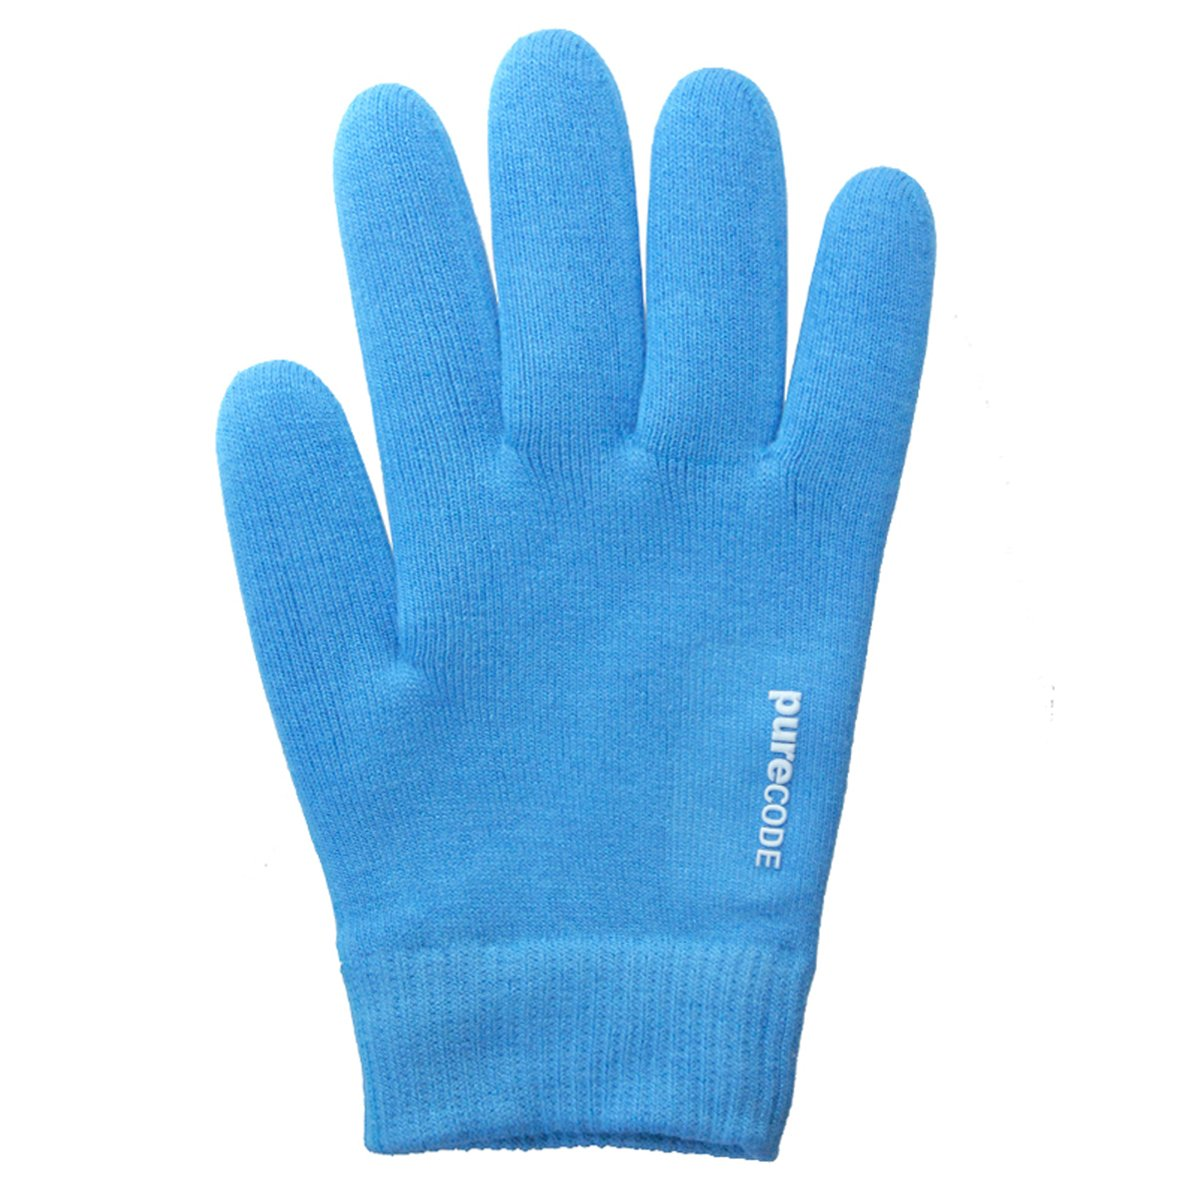 PURECODE Moisturizing Gel Gloves (Dark Blue XL Men) by PURECODE (Image #1)